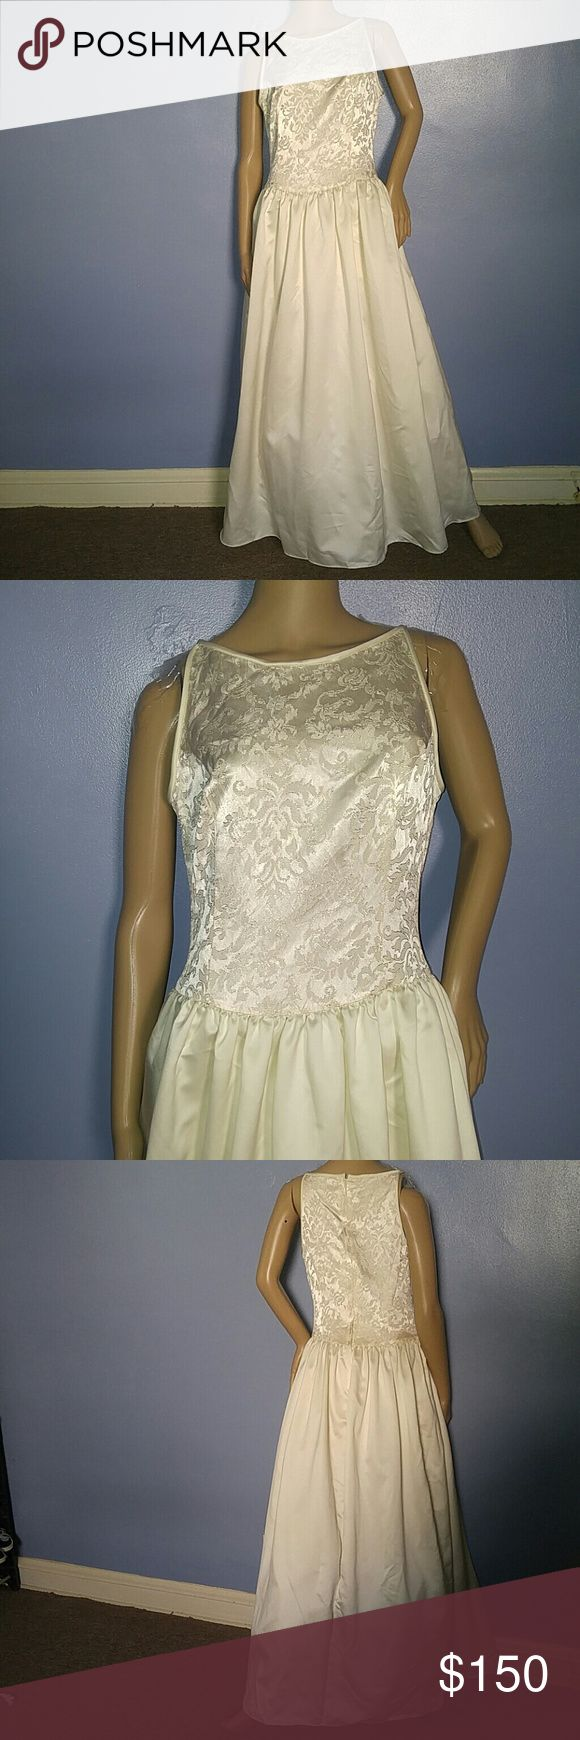 Vintage Original Gunne Sax Wedding Dress Stunning Vintage Original Gunne Sax Wedding Dress. Label: Jessica McClintock Gunne Sax Bodice has Textured Floral Design with Flowers Trimmed in Gold Lame. Beautiful Condition ! Off White Color. An Awesome Gown for Today's Princess Bride. Fits Size 8 Vintage Dresses Wedding